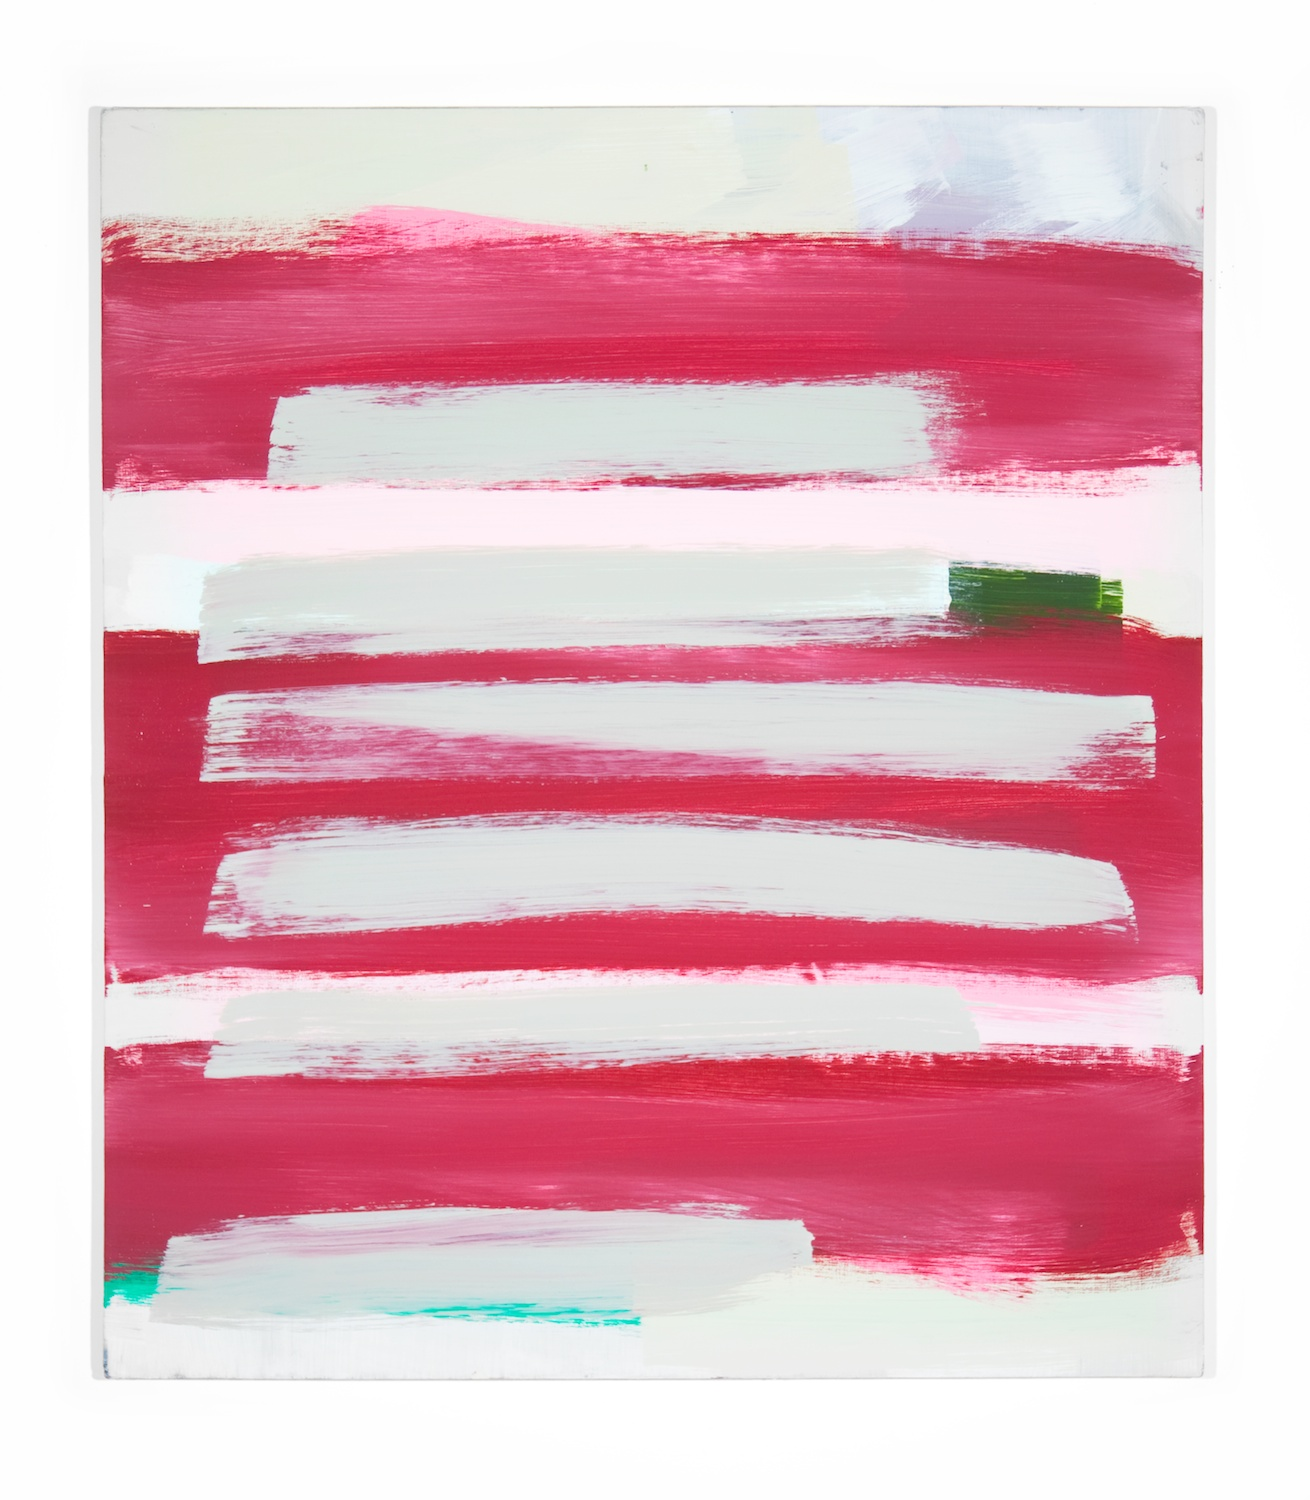 Jon Pestoni  Pink and green widths  2010 Oil on canvas on panel 41 ¼h x 32w in JP028